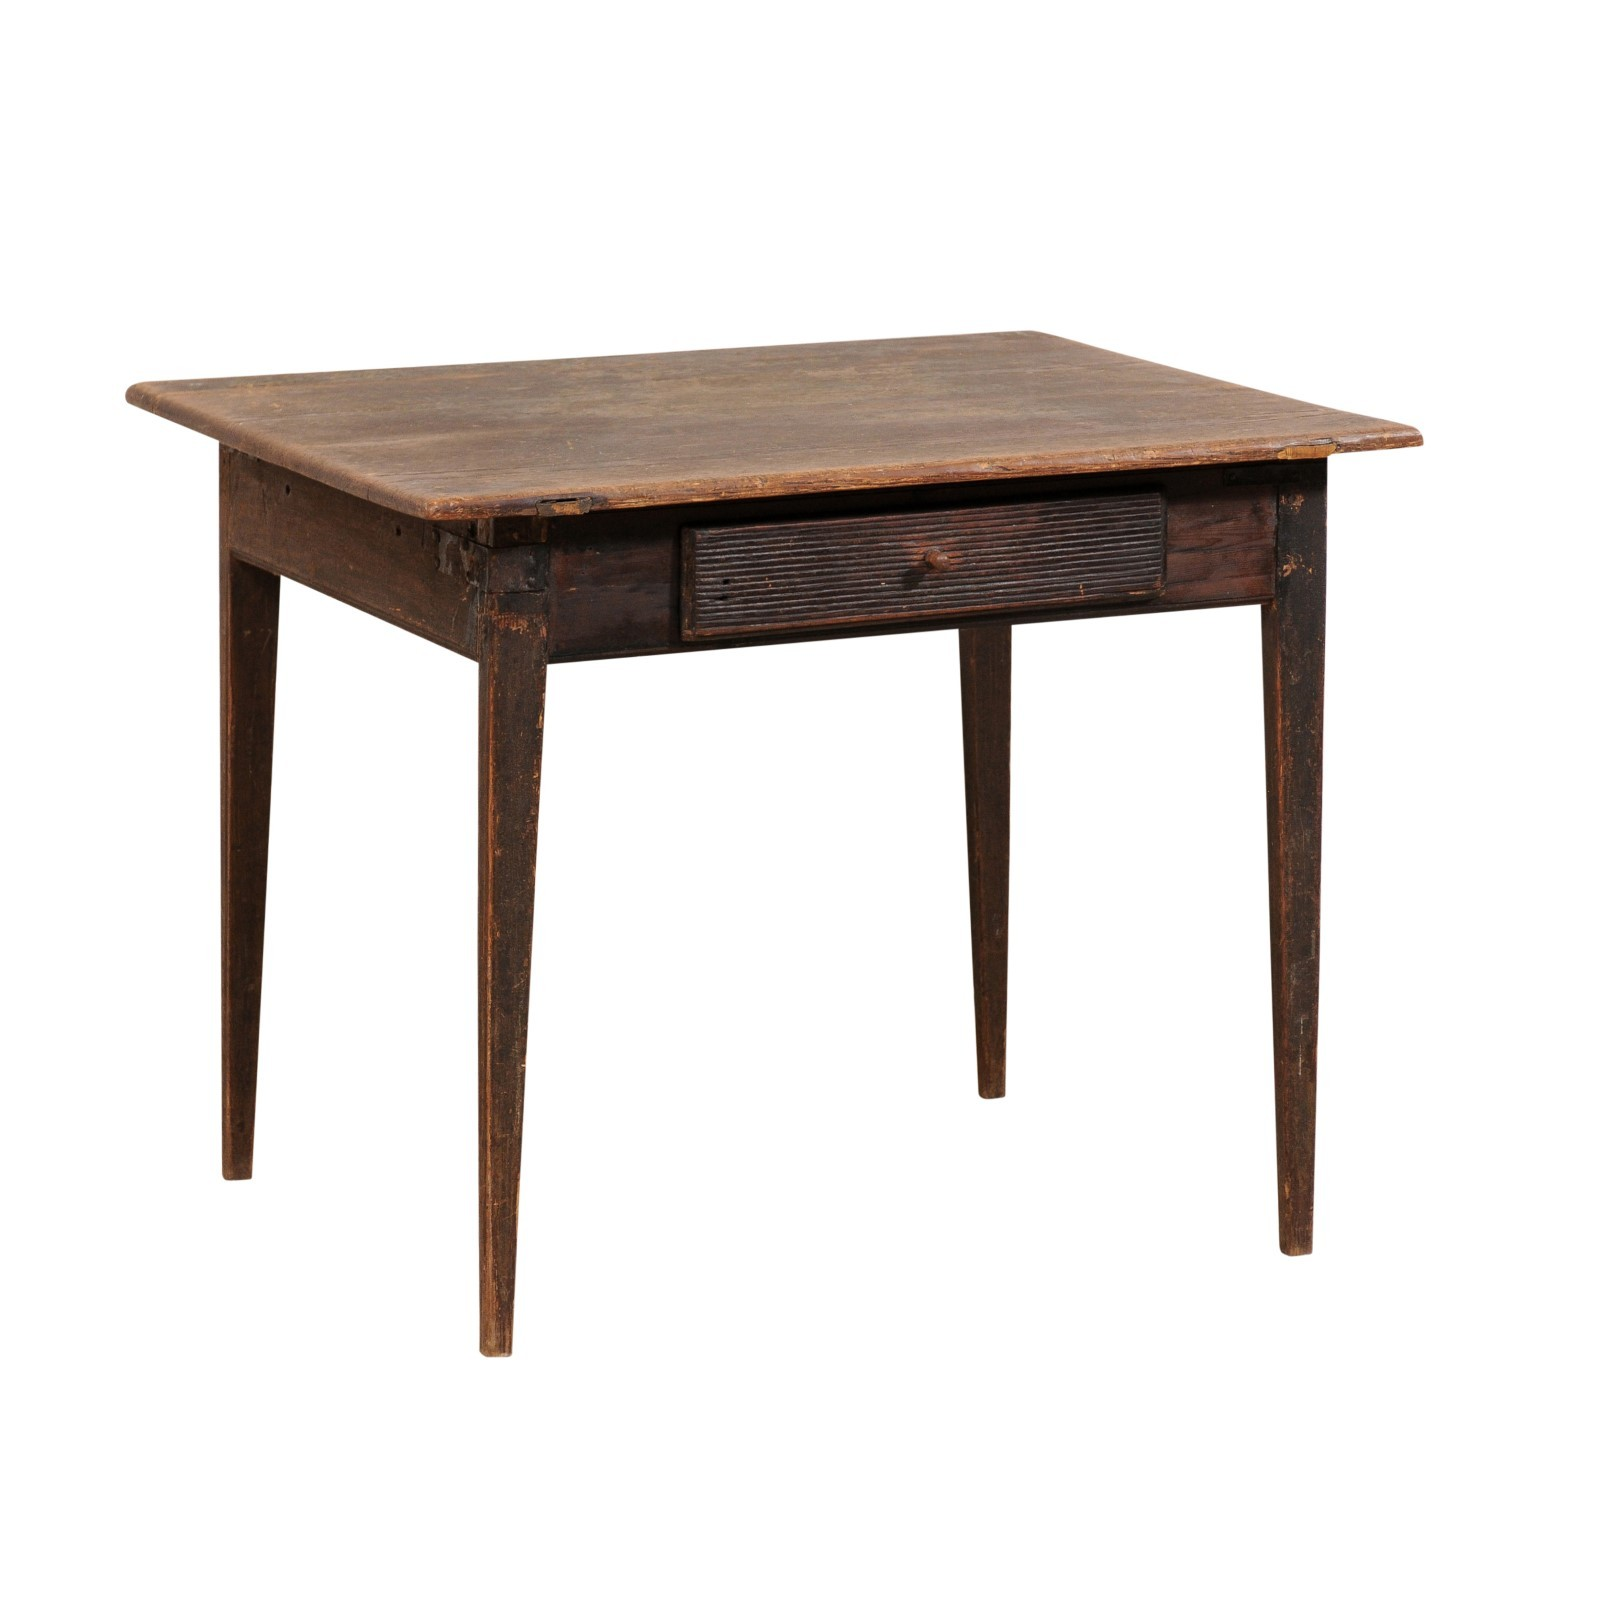 Swedish Period Gustavian Table w/Drawer